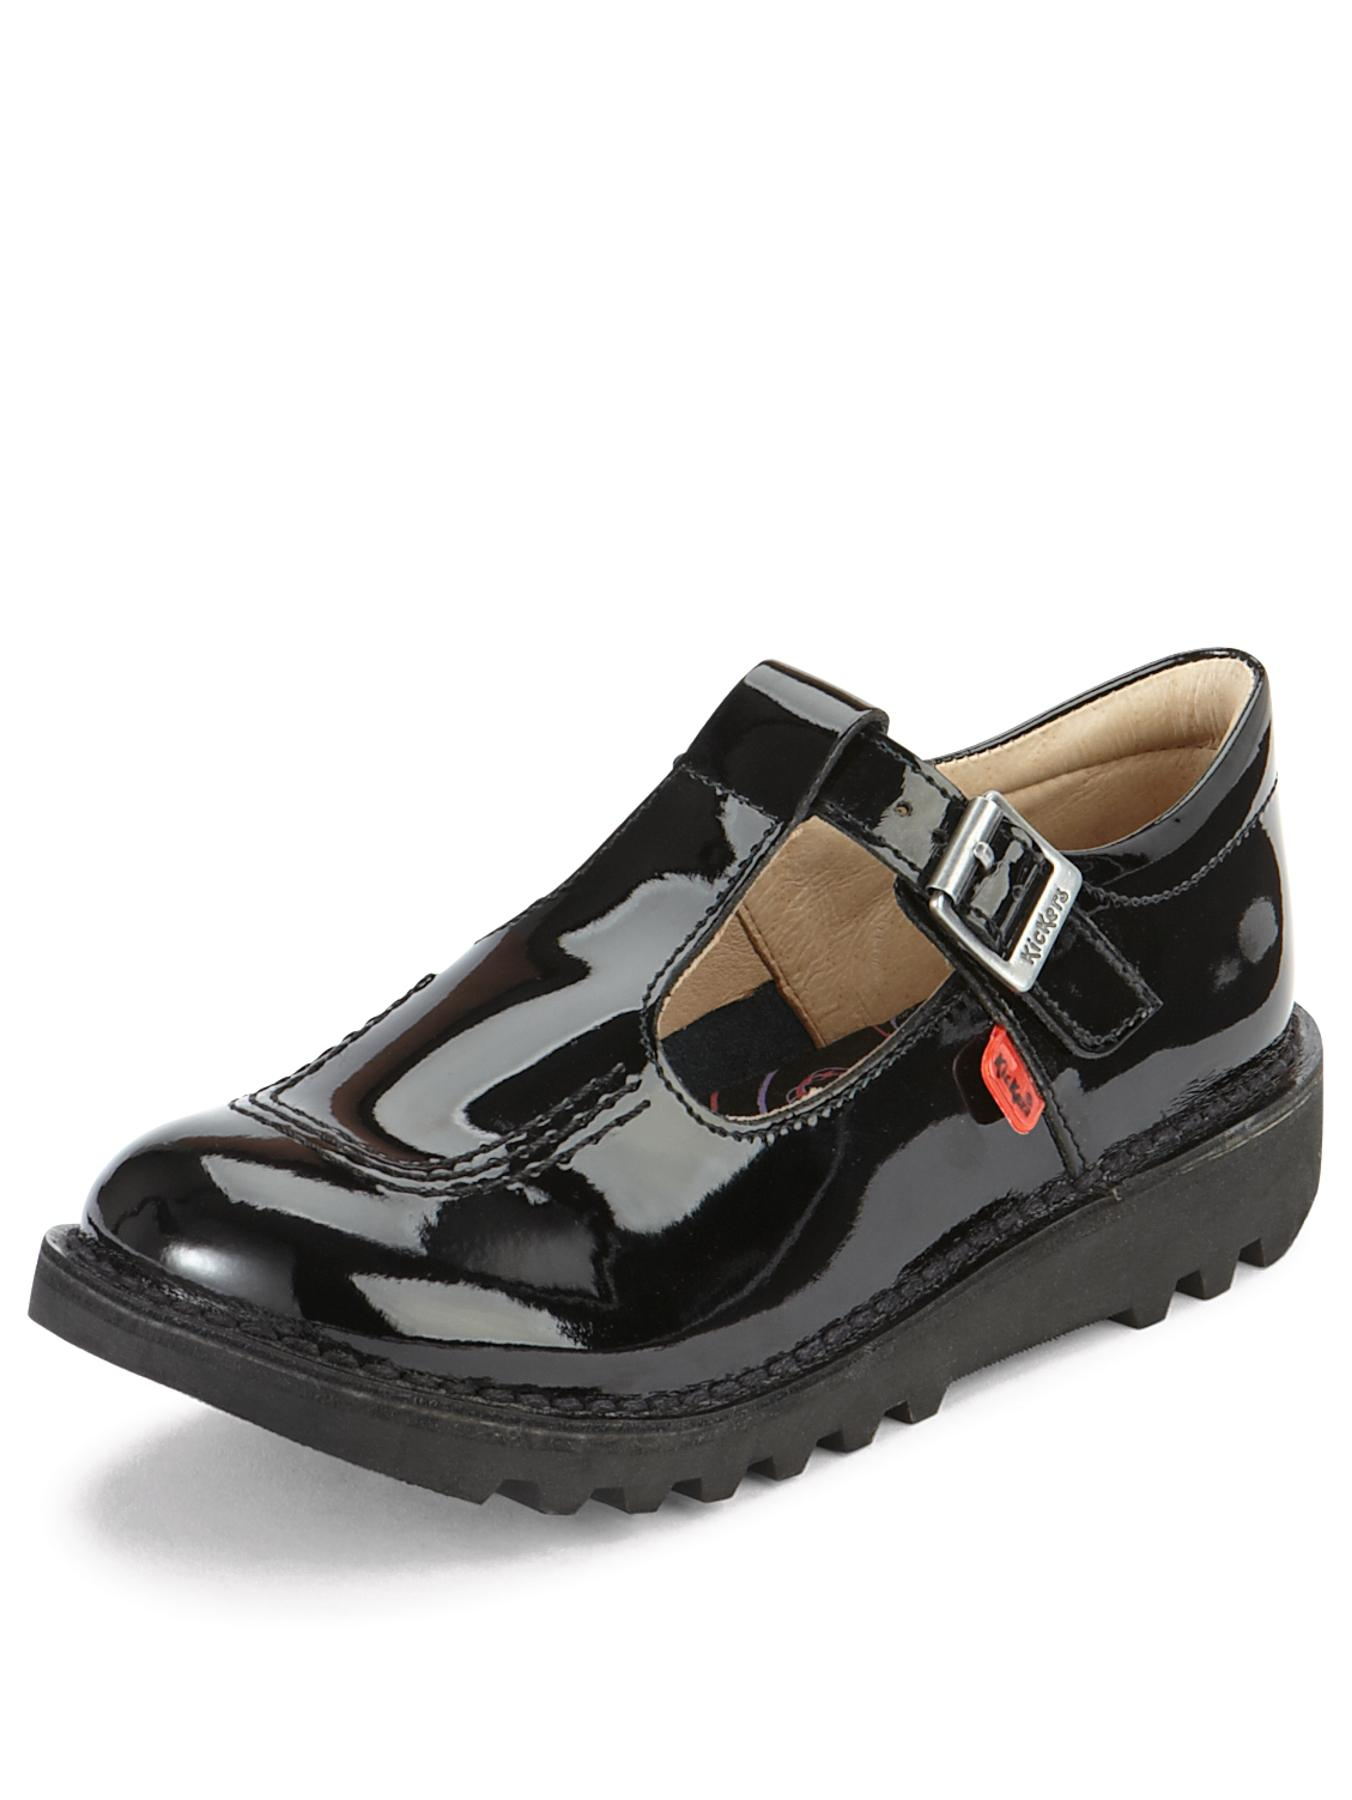 Shop eBay for great deals on Leather Girls' School Shoes. You'll find new or used products in Leather Girls' School Shoes on eBay. Free shipping on selected items.